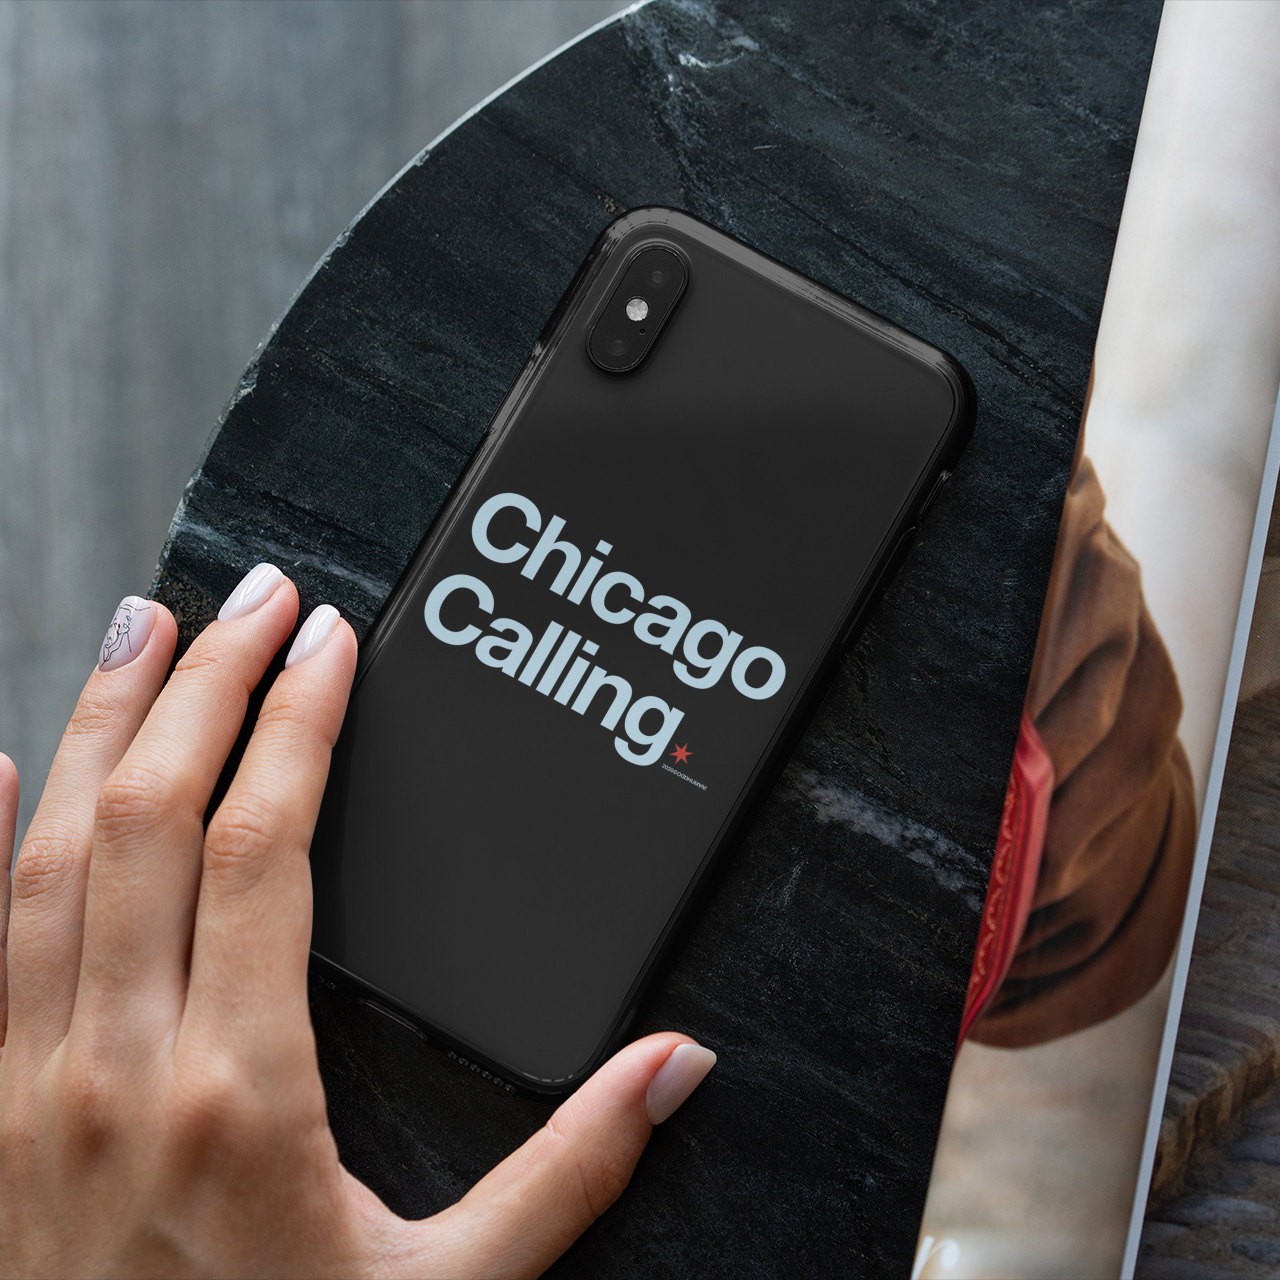 No matter where we are, there's always something calling us back. Available on shirts and cases and more in our shop at . #chicagogram #chicagolove #oddhuman #ilovechicago #chicagonative